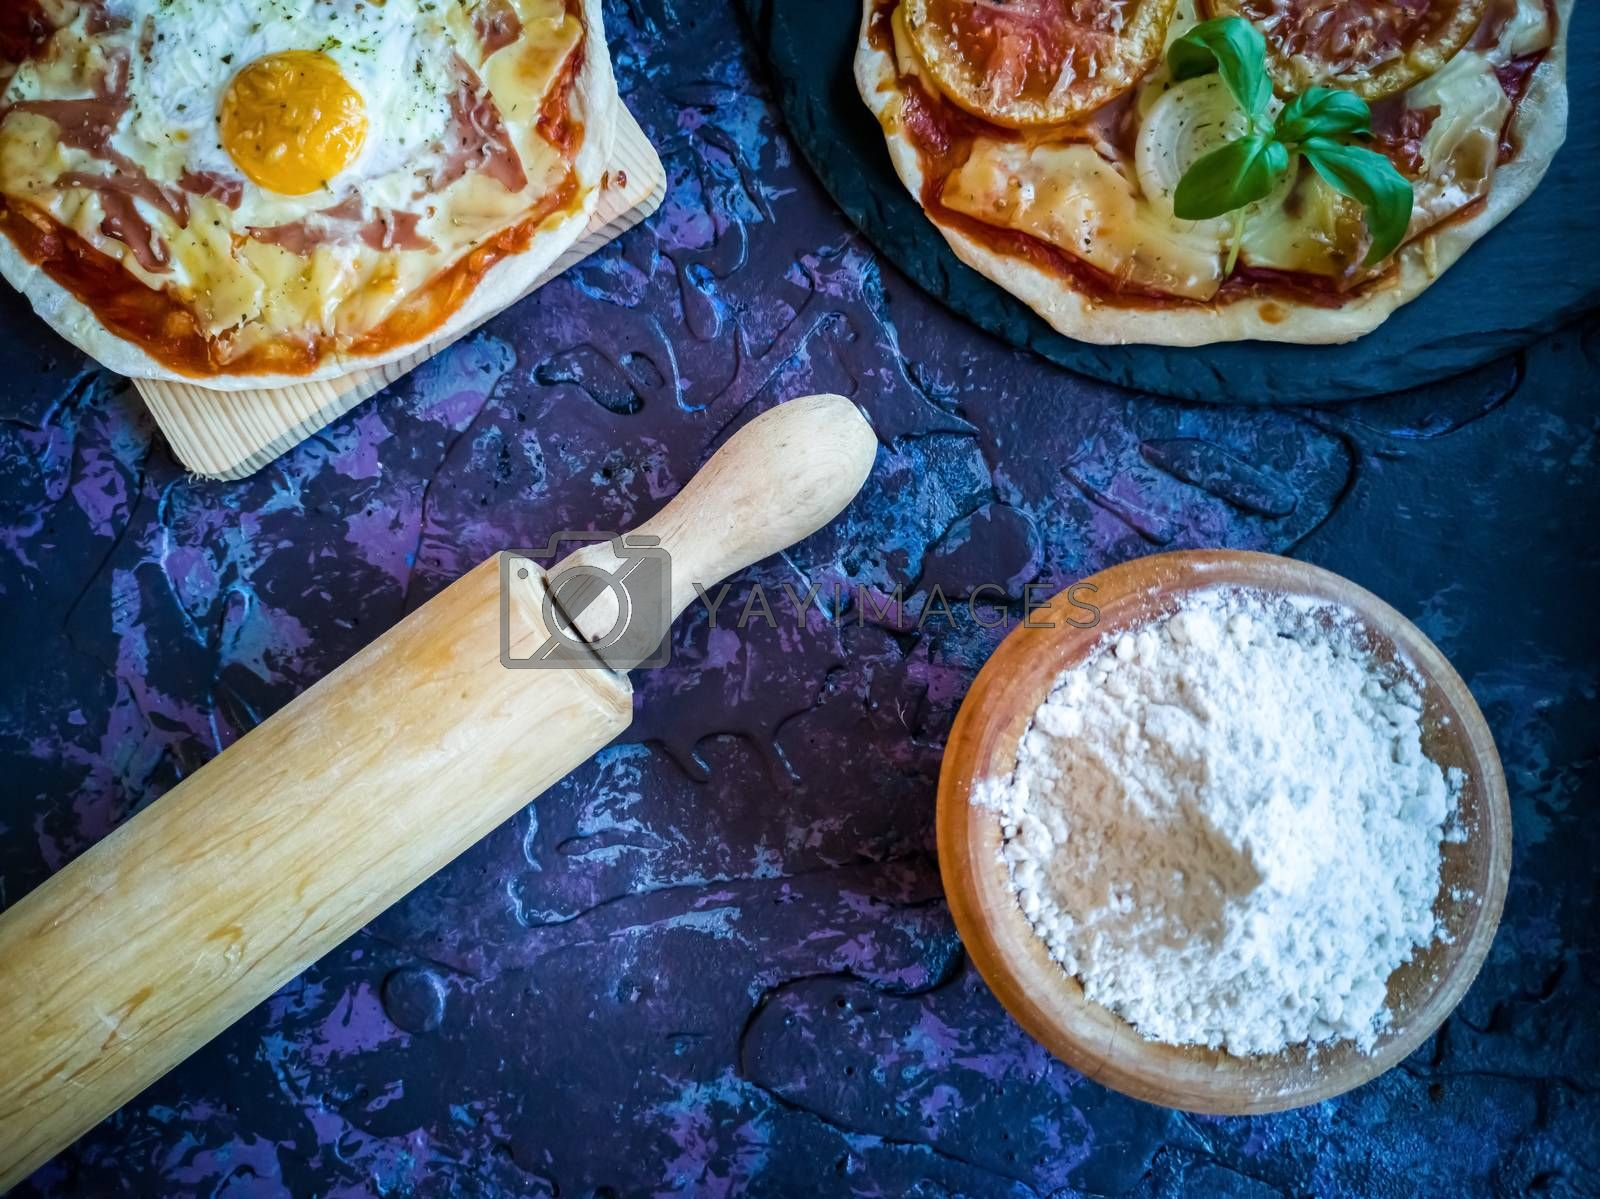 Homemade pizzas and utensils on dark background in lilac tones